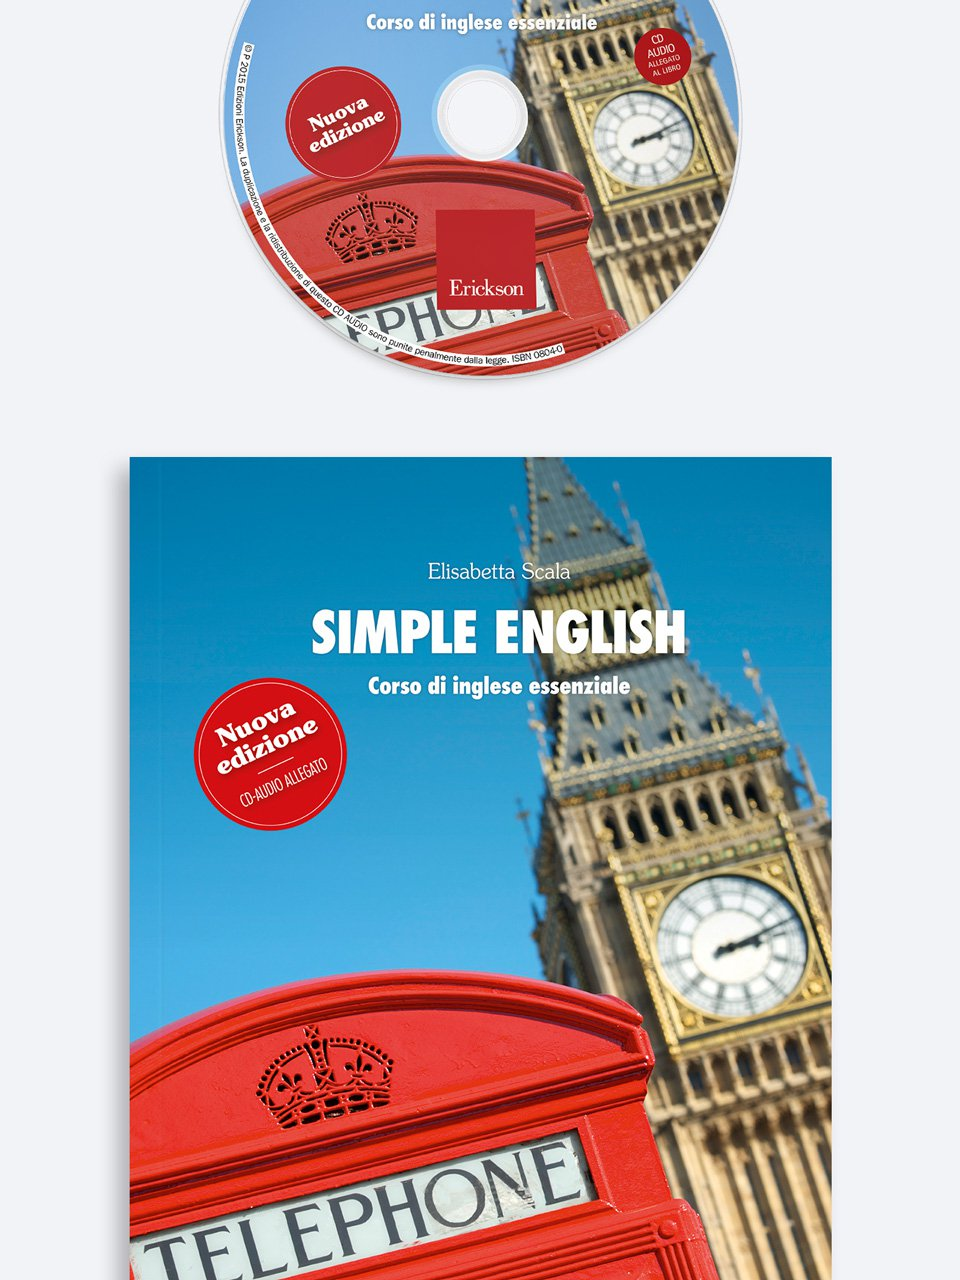 Simple English - Français facile - Libri - App e software - Erickson